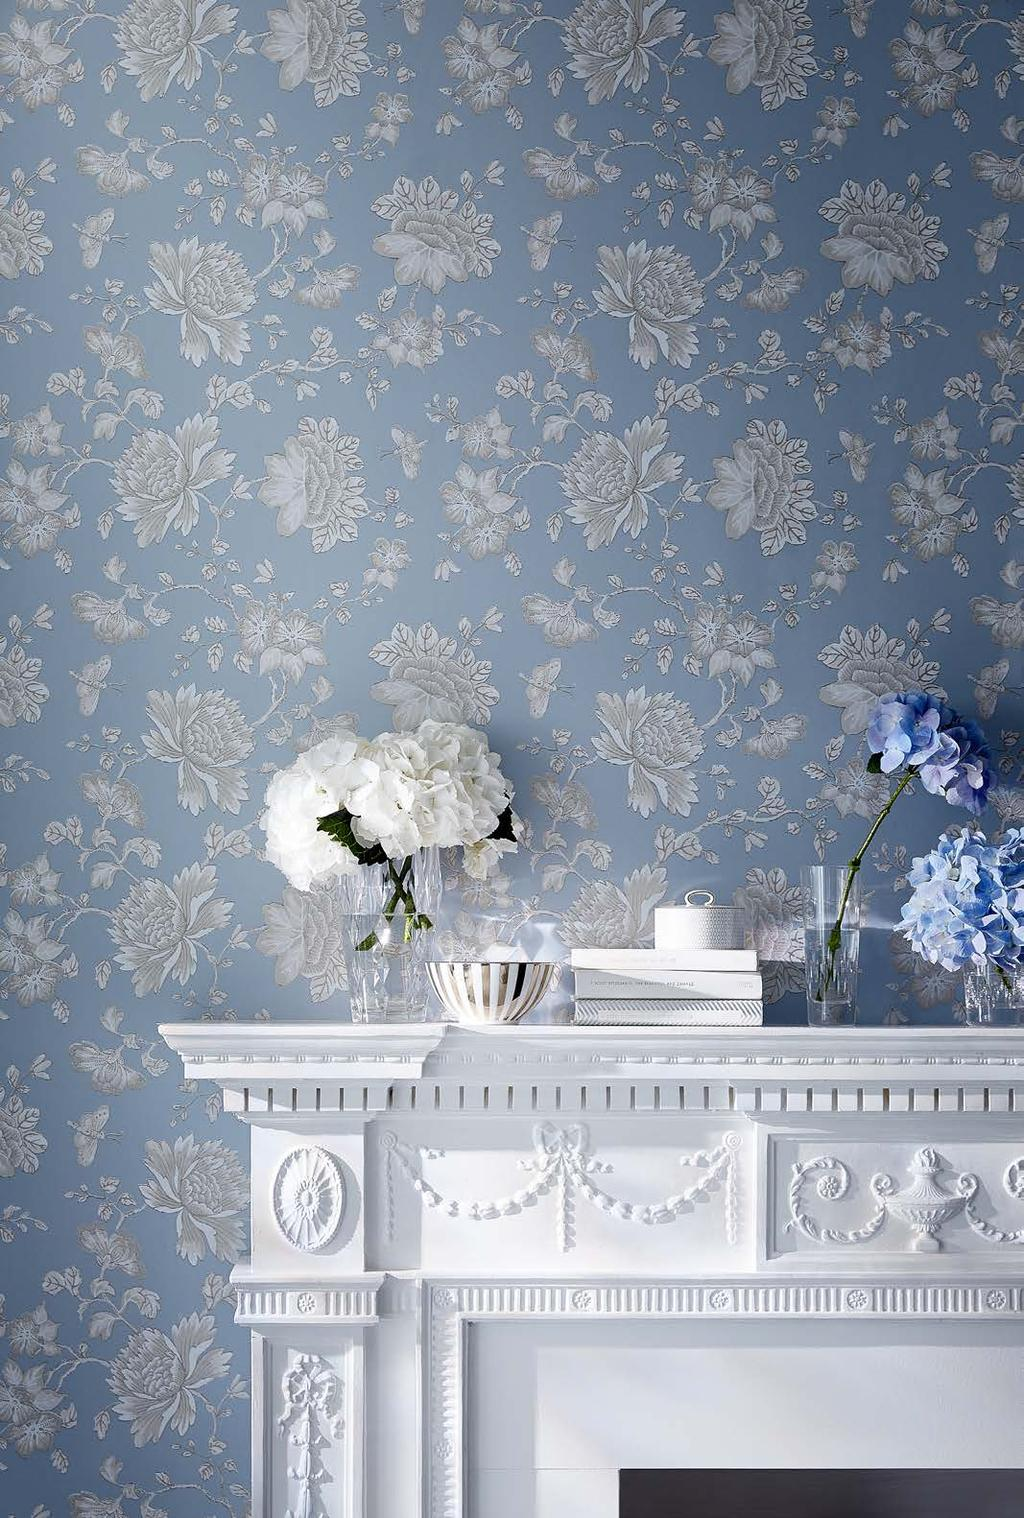 WALLCOVERING: Fabled